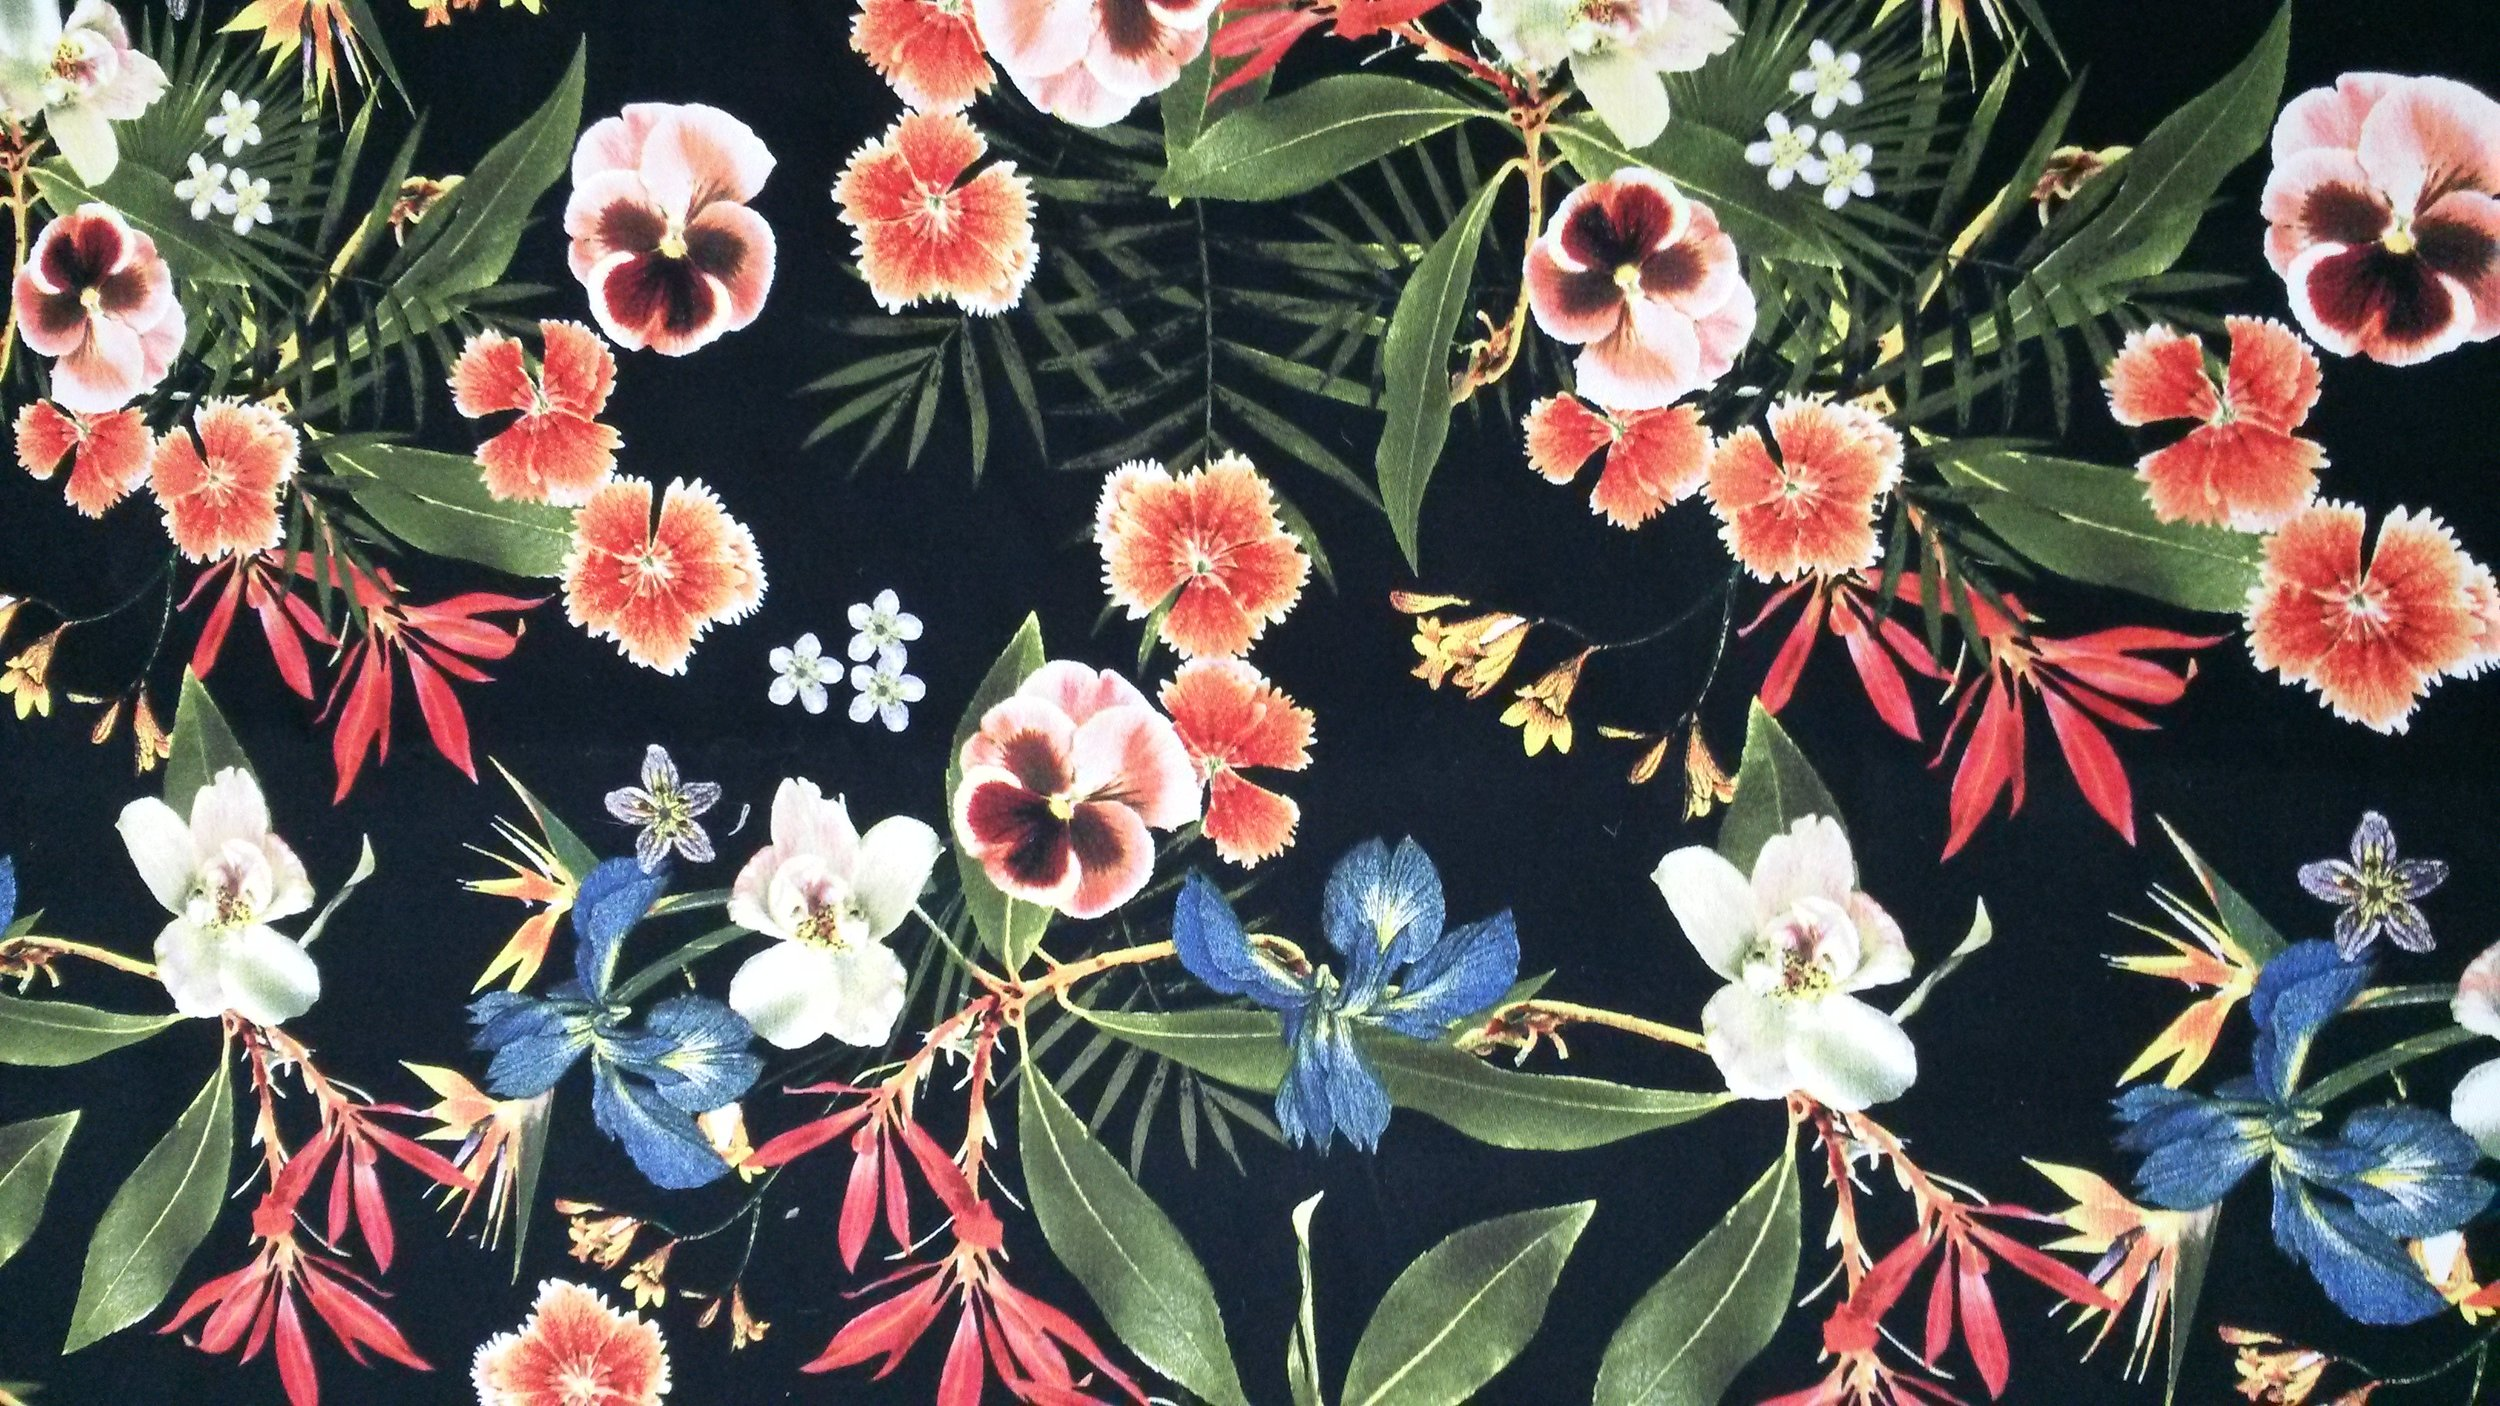 KCL-IDESIGN, LLC - Multicolored Tropical Flowers on Black JOANN Fabric